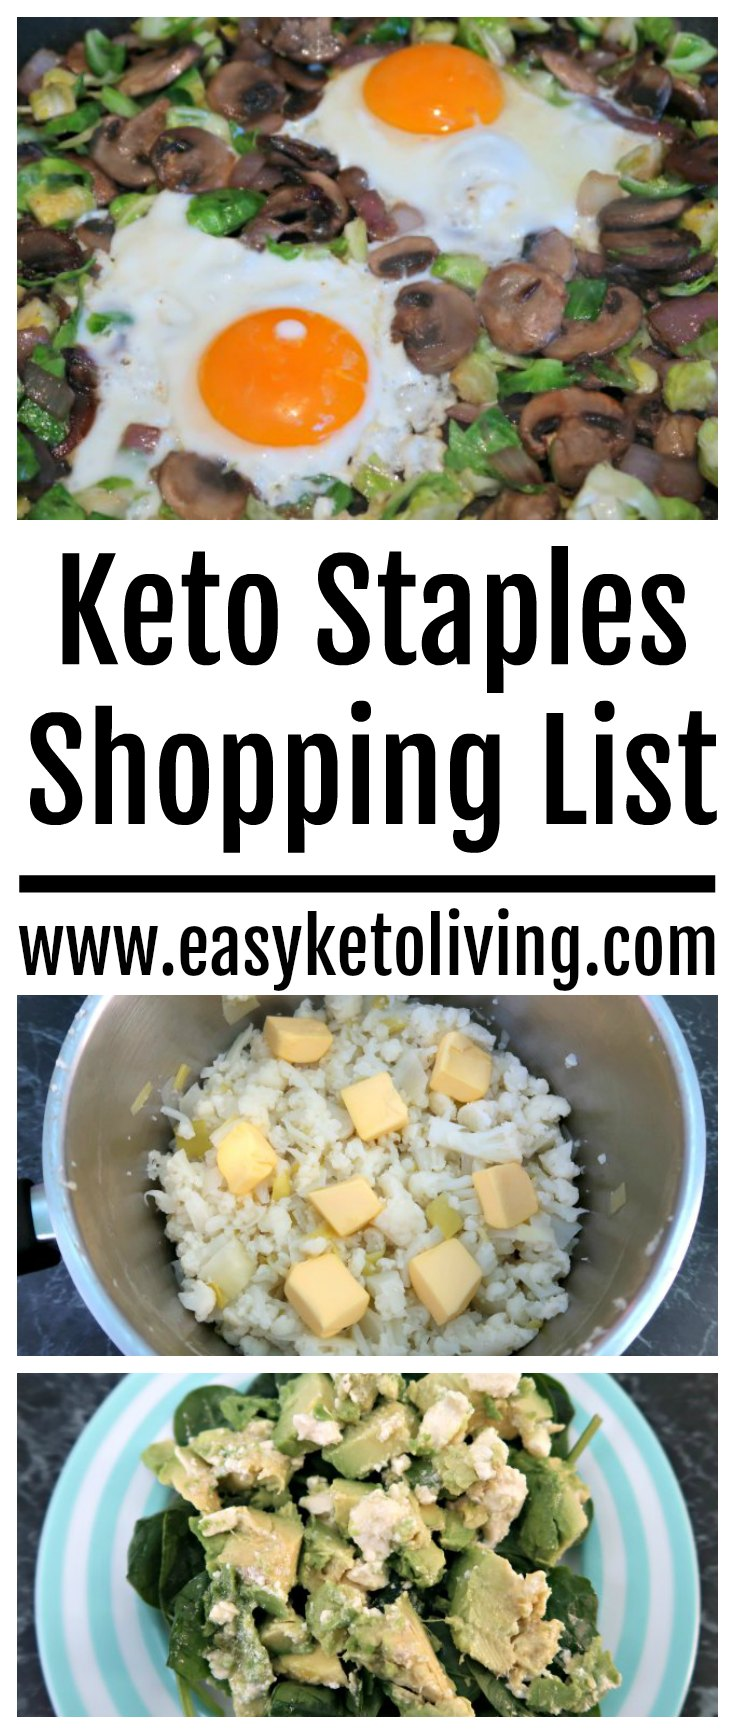 Keto Staples Shopping List - A List of Low Carb essentials for success